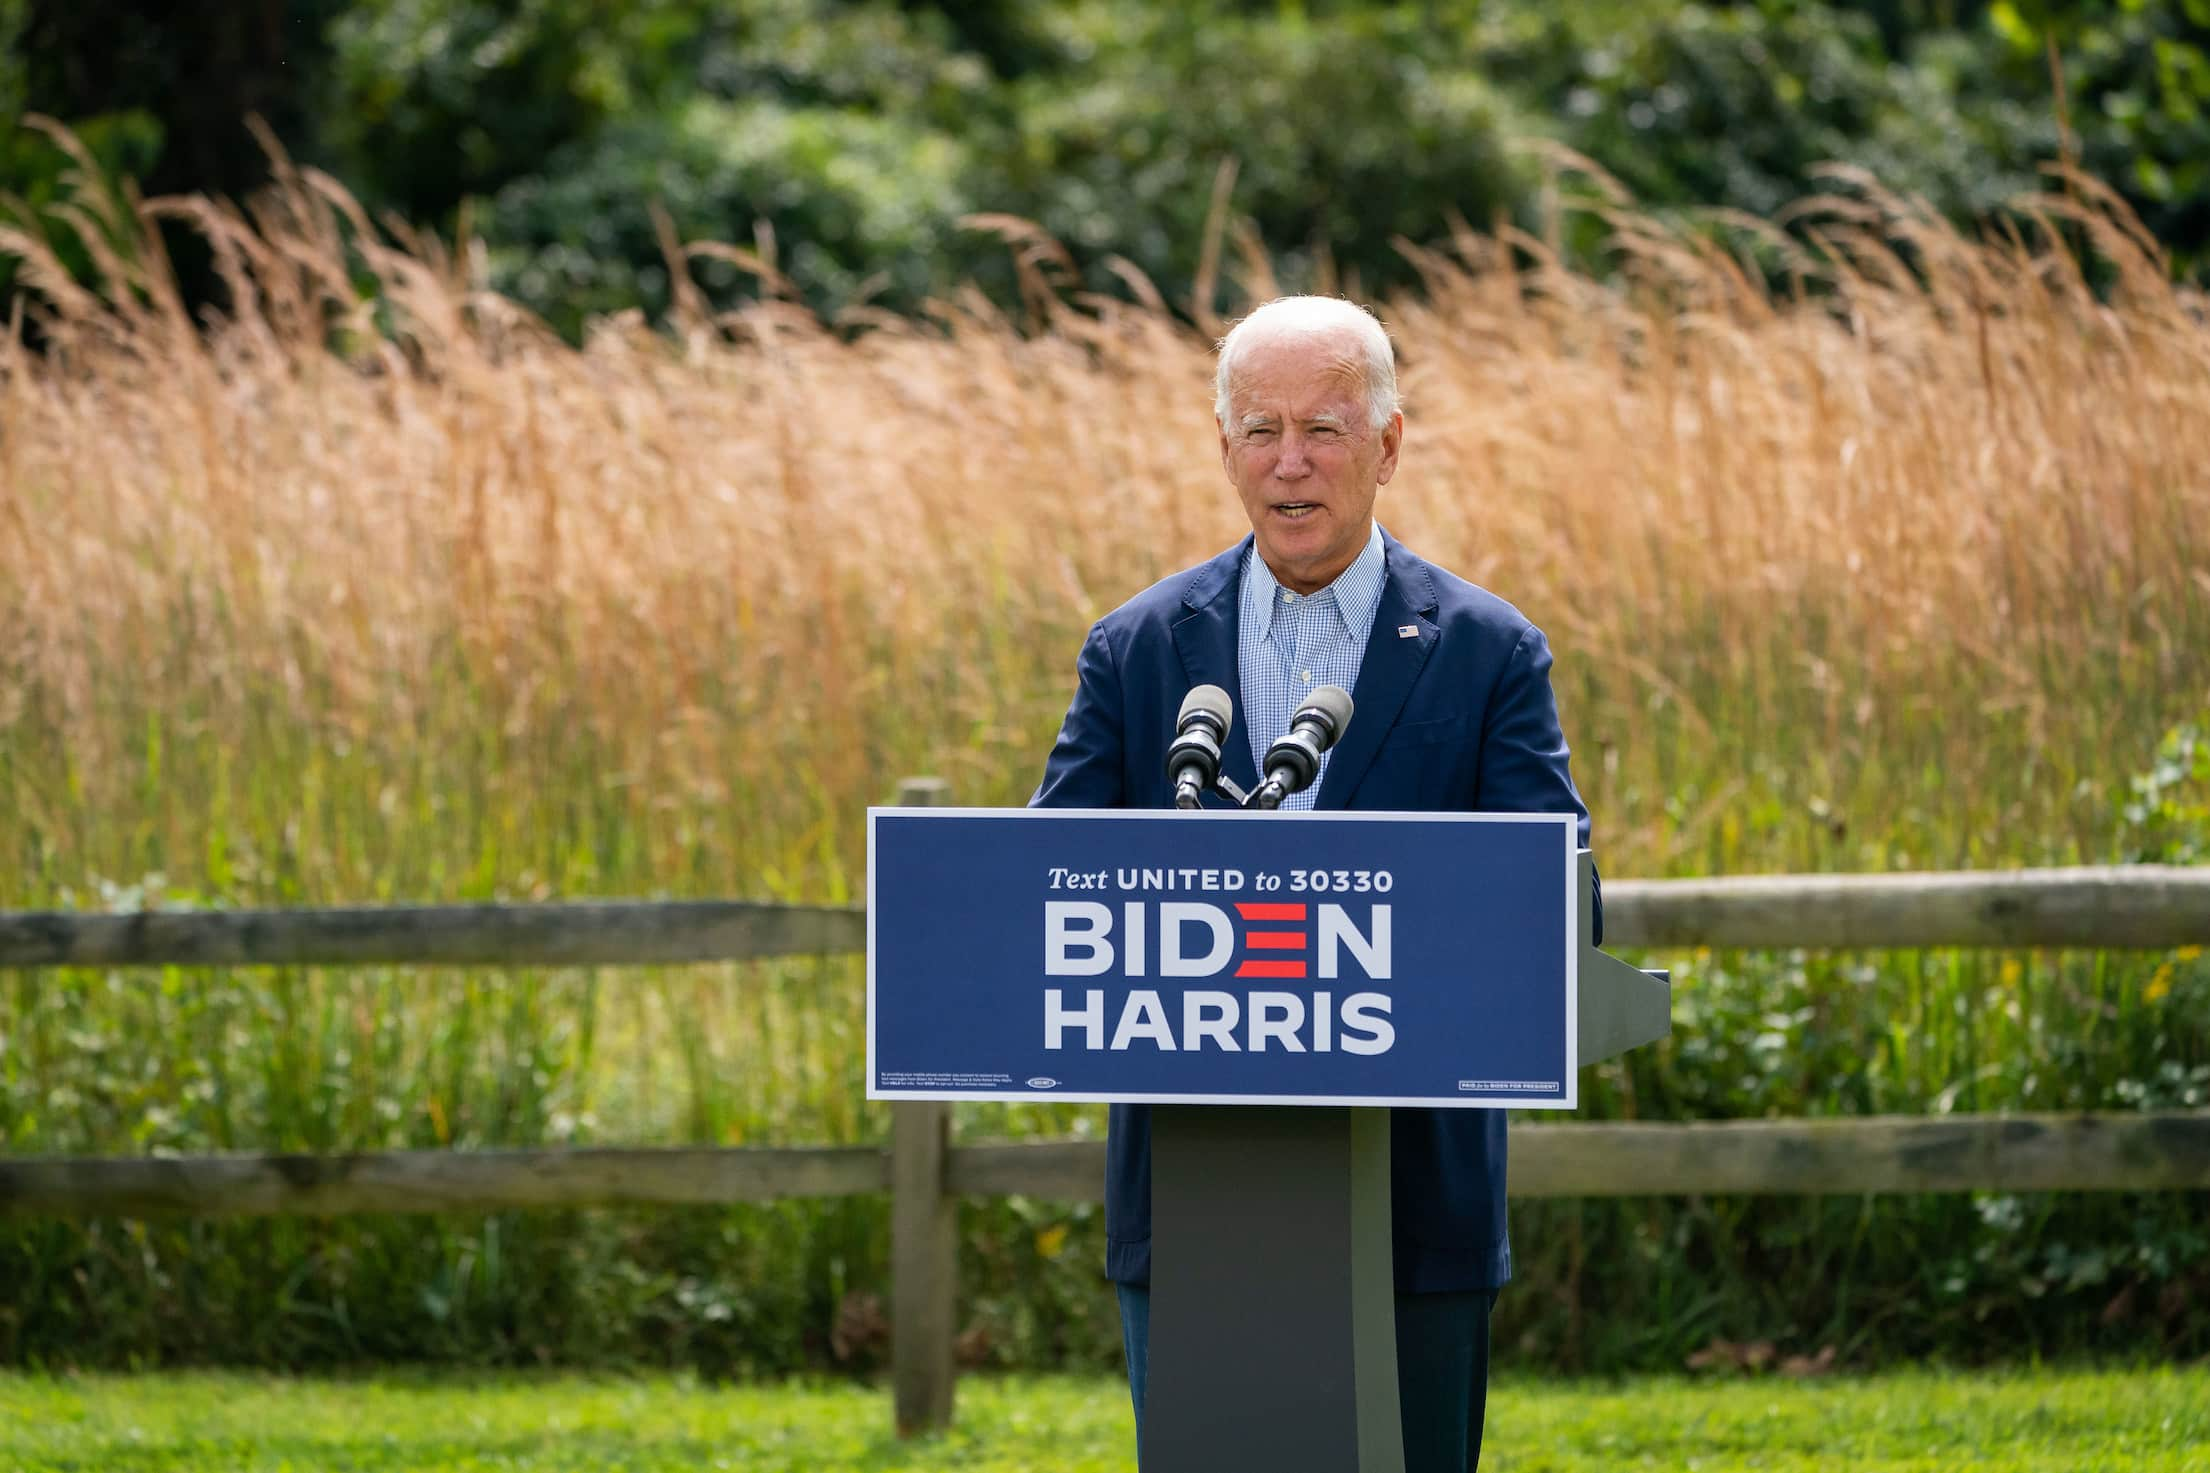 Joe Biden climate change remarks